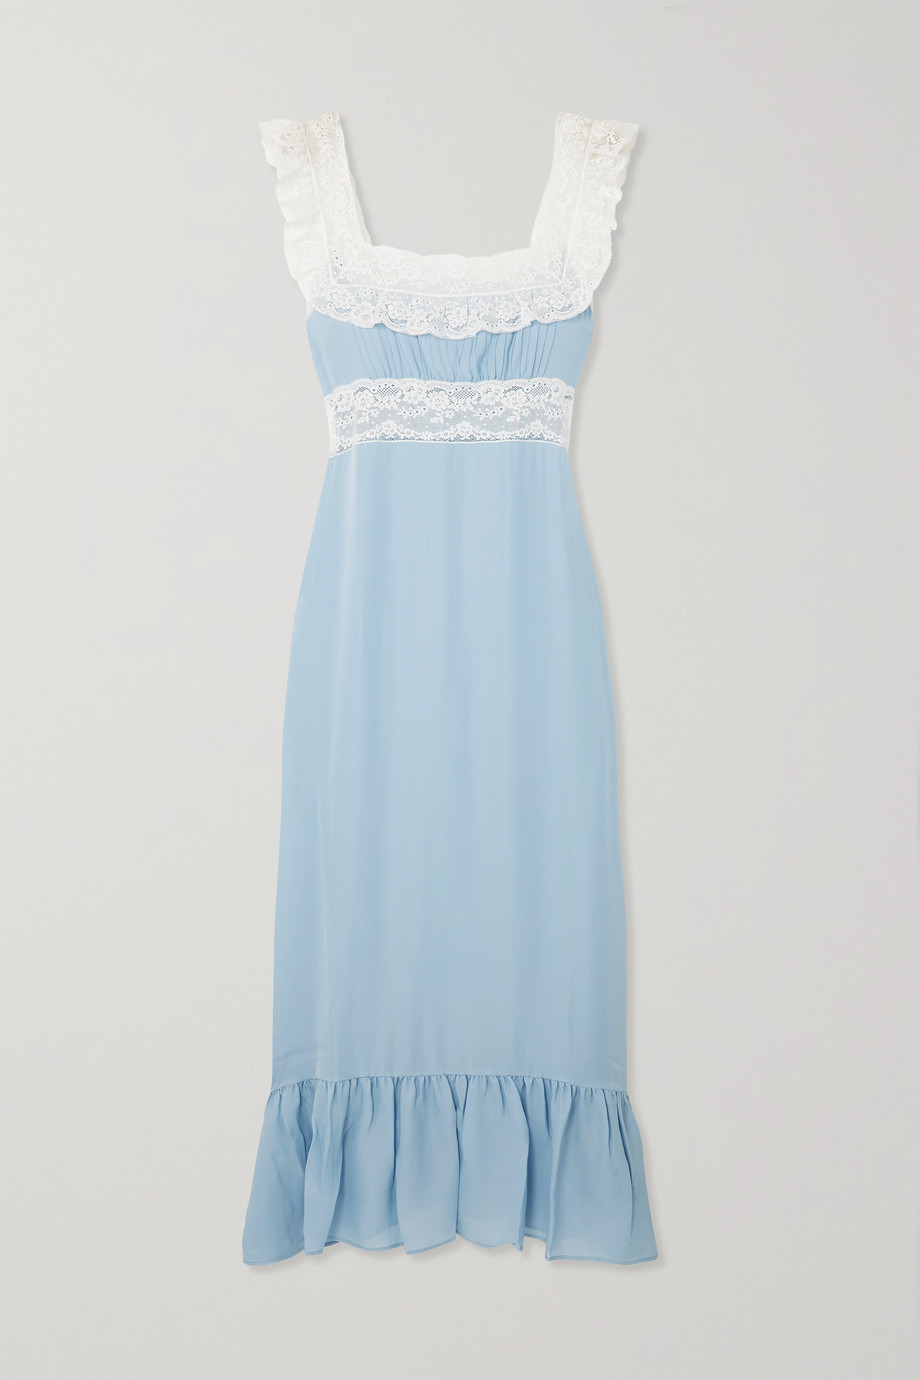 Lorreta Caponi Margherita lace-trimmed silk-georgette nightdress